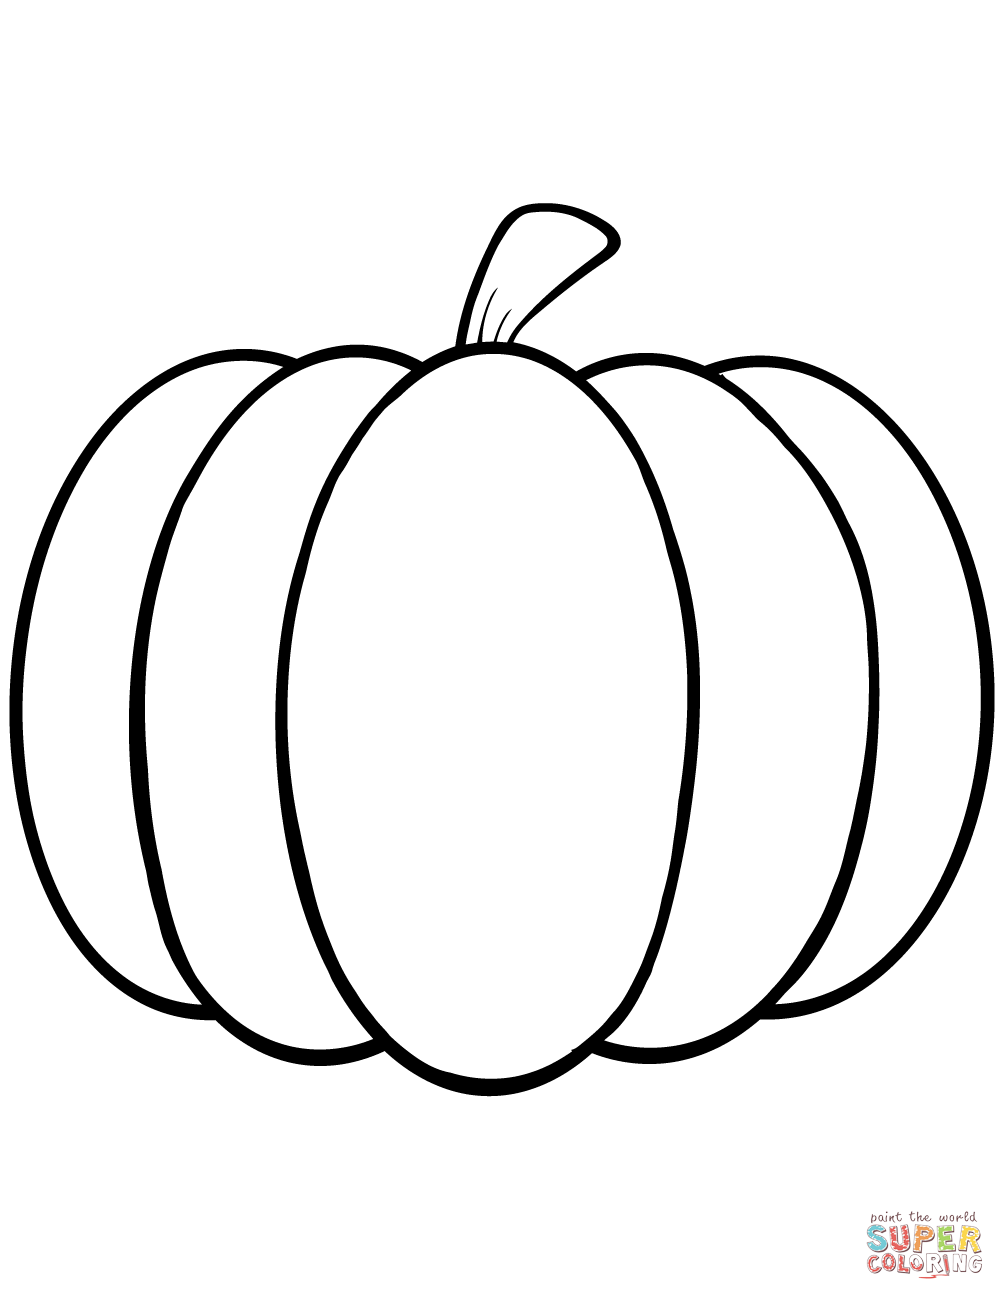 1005x1300 Simple Pumpkin Coloring Page Free Printable Coloring Pages